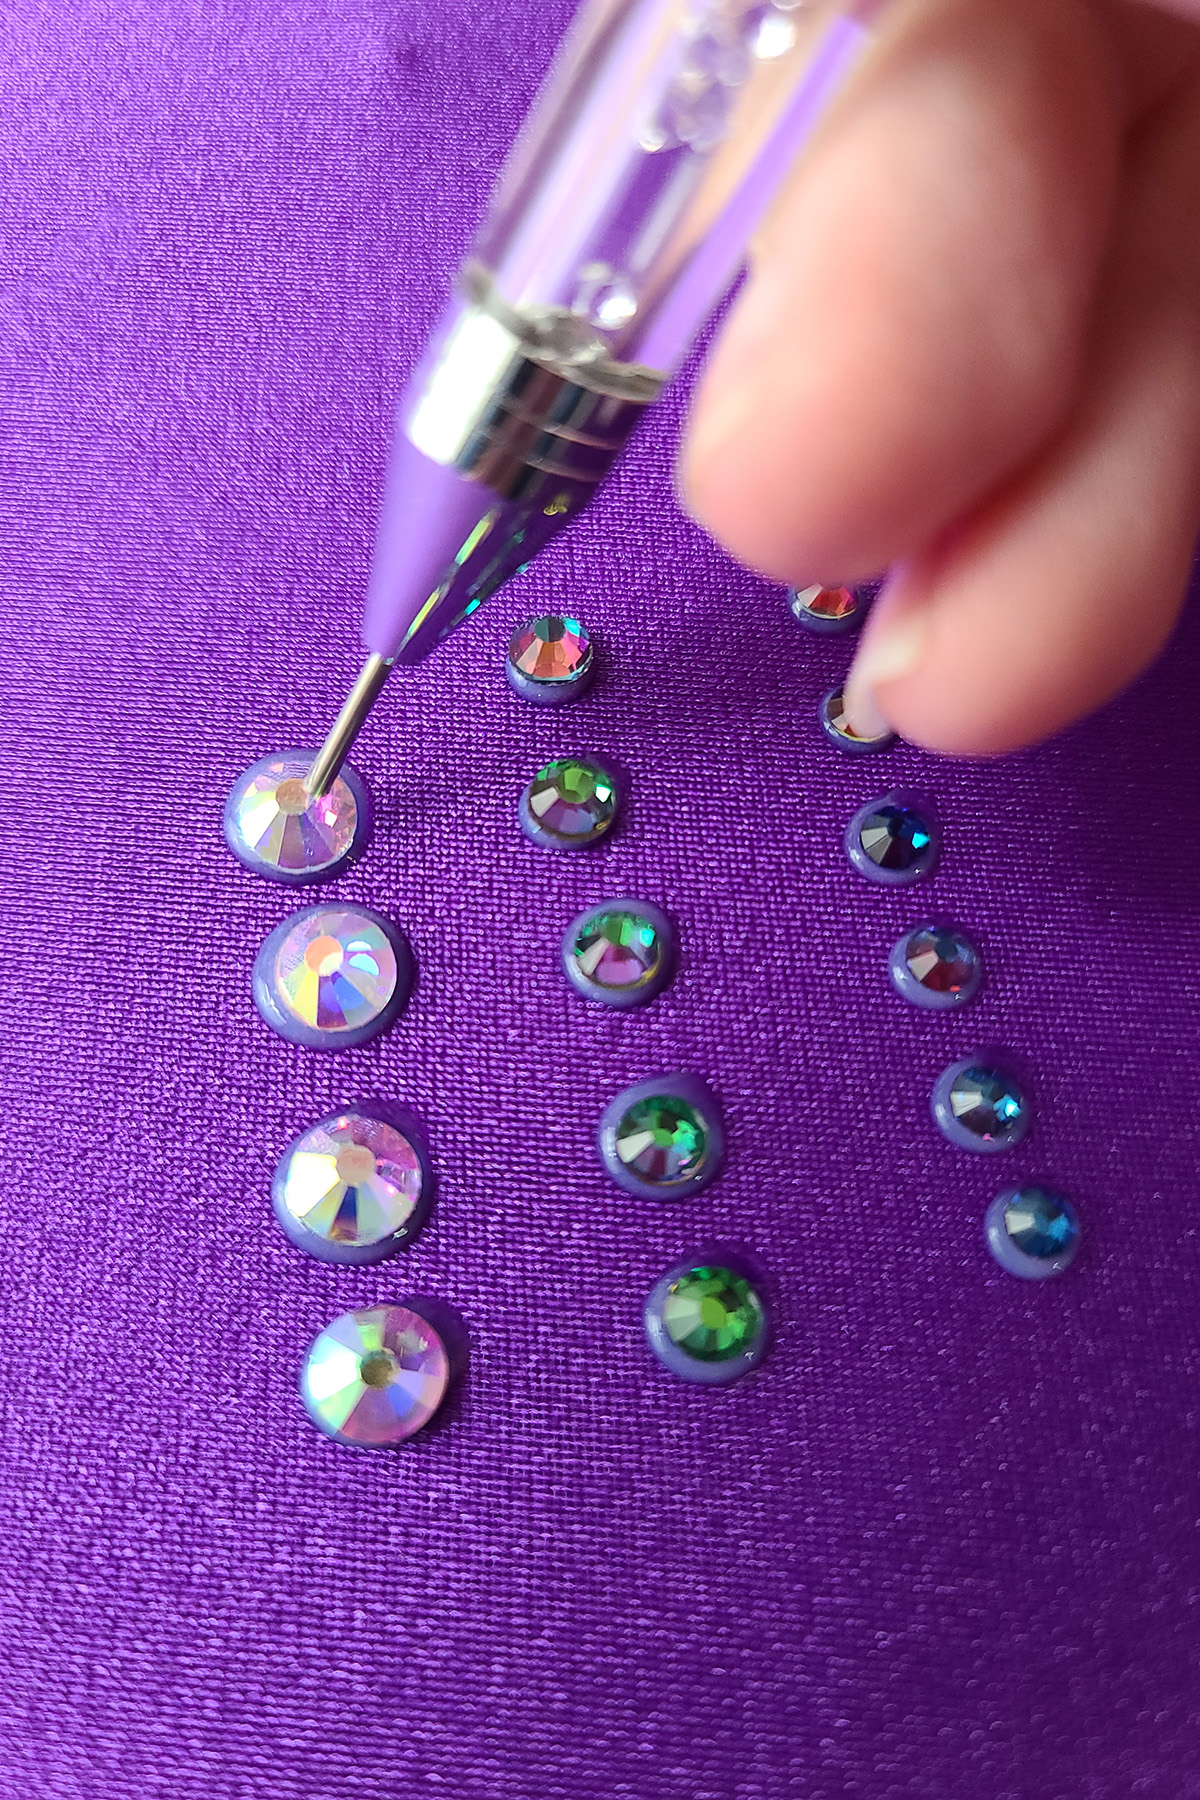 A close up view of the metal end of a wax picker being used to push crystals down into glue, on a purple fabric.